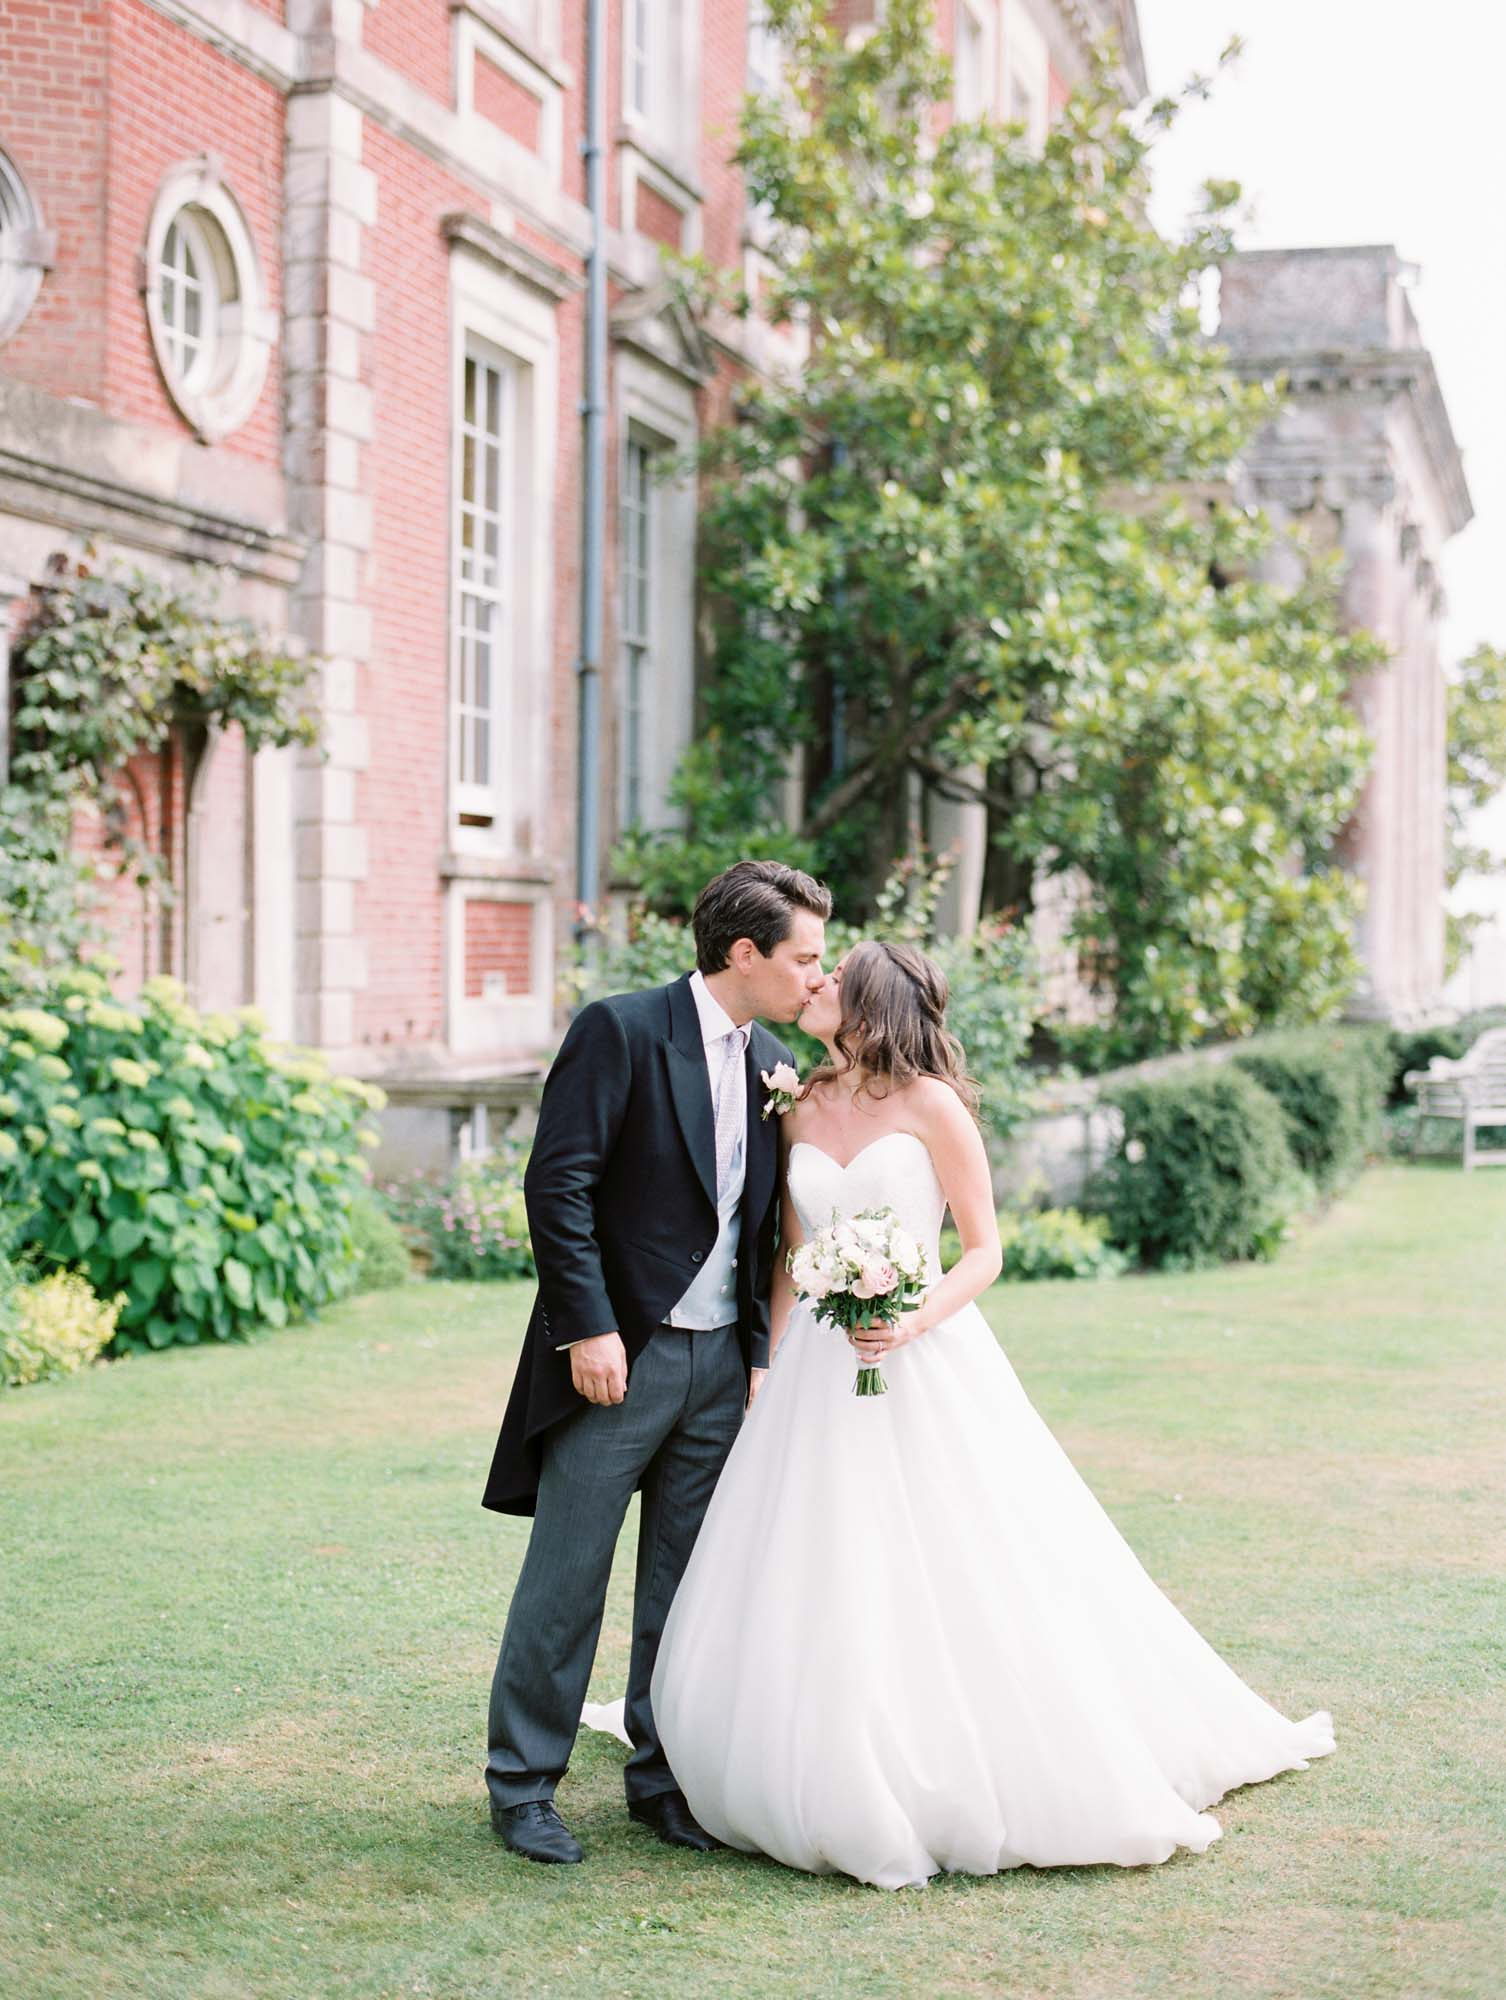 Bride and groom kissing on the lawn of Stansted House